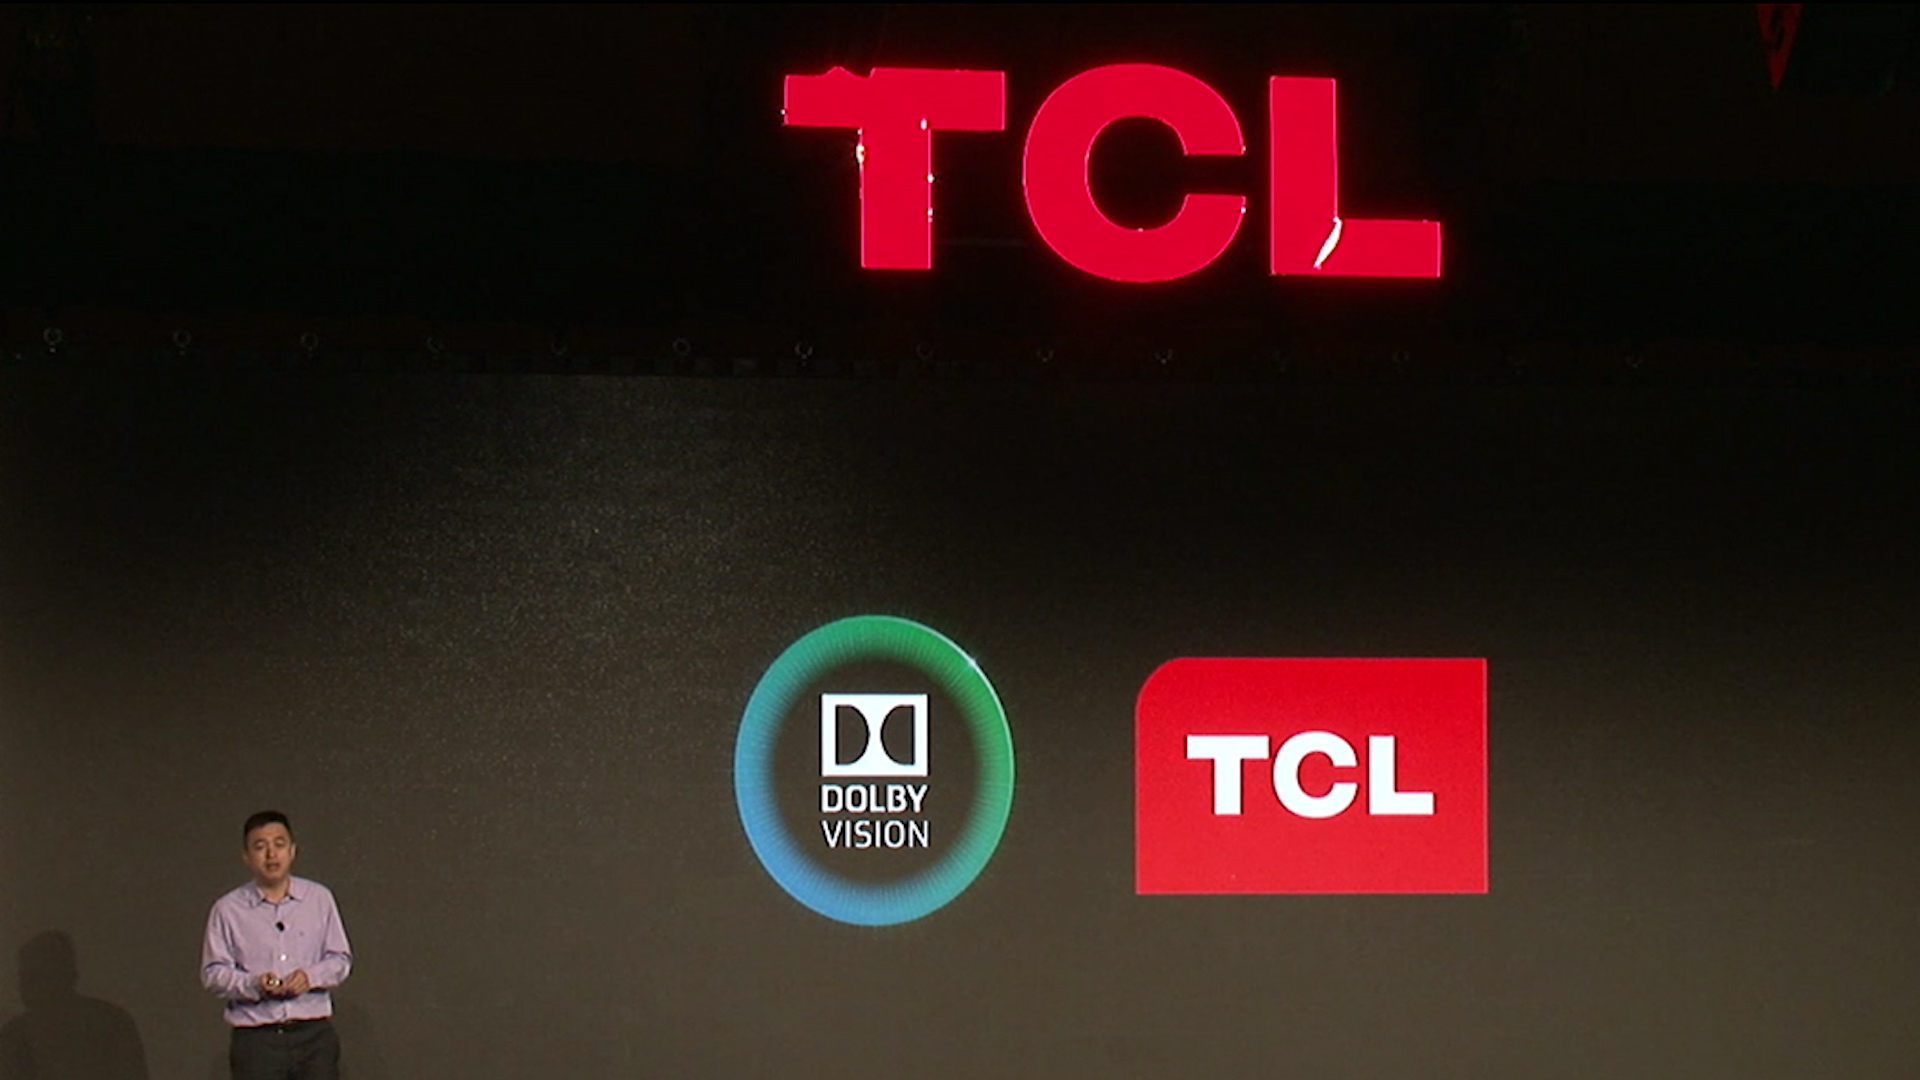 Video: TV maker TCL announces high-end TV with Dolby Vision HDR